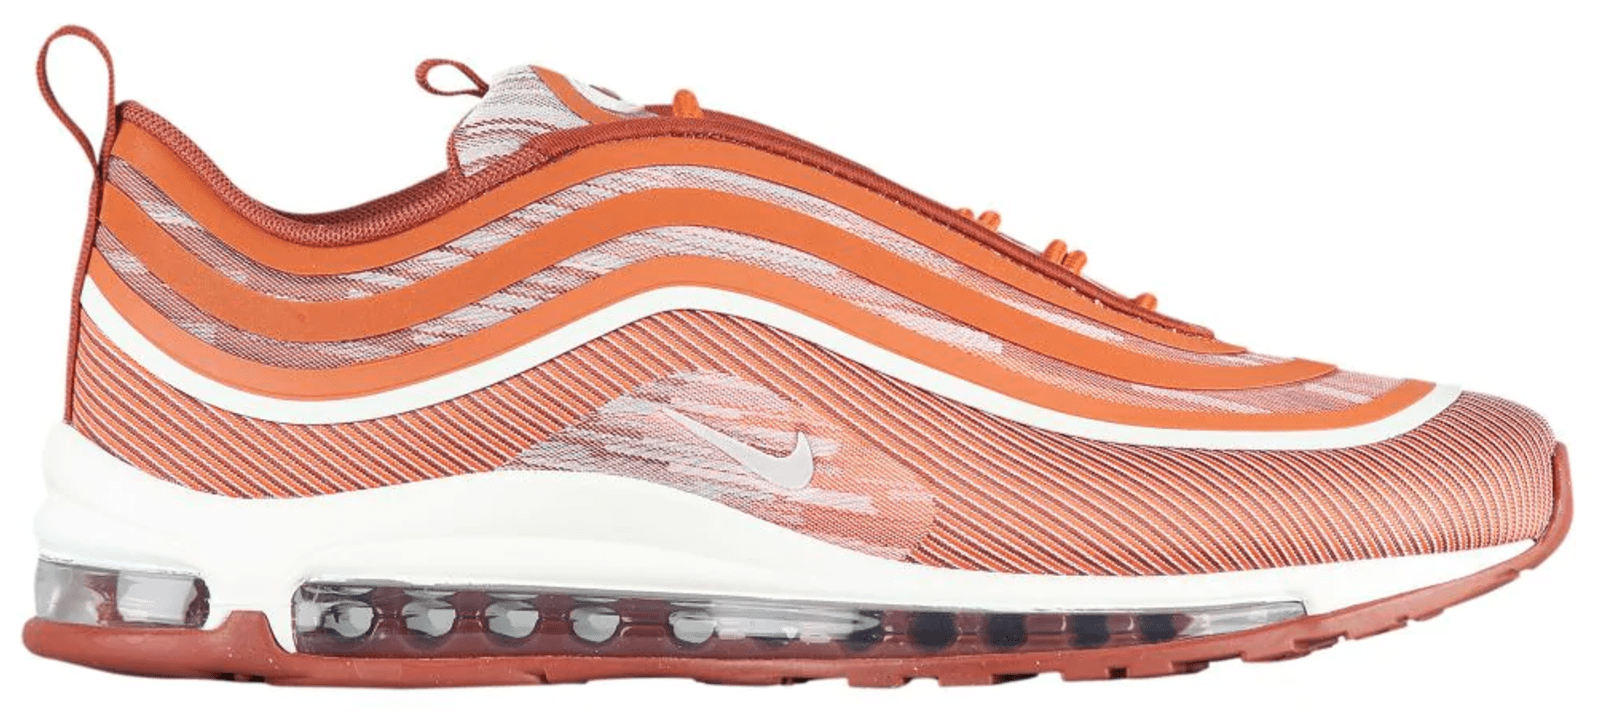 WMNS Nike Air Max 97 UL '17 LX UK 7 EUR 41 Particle Rose